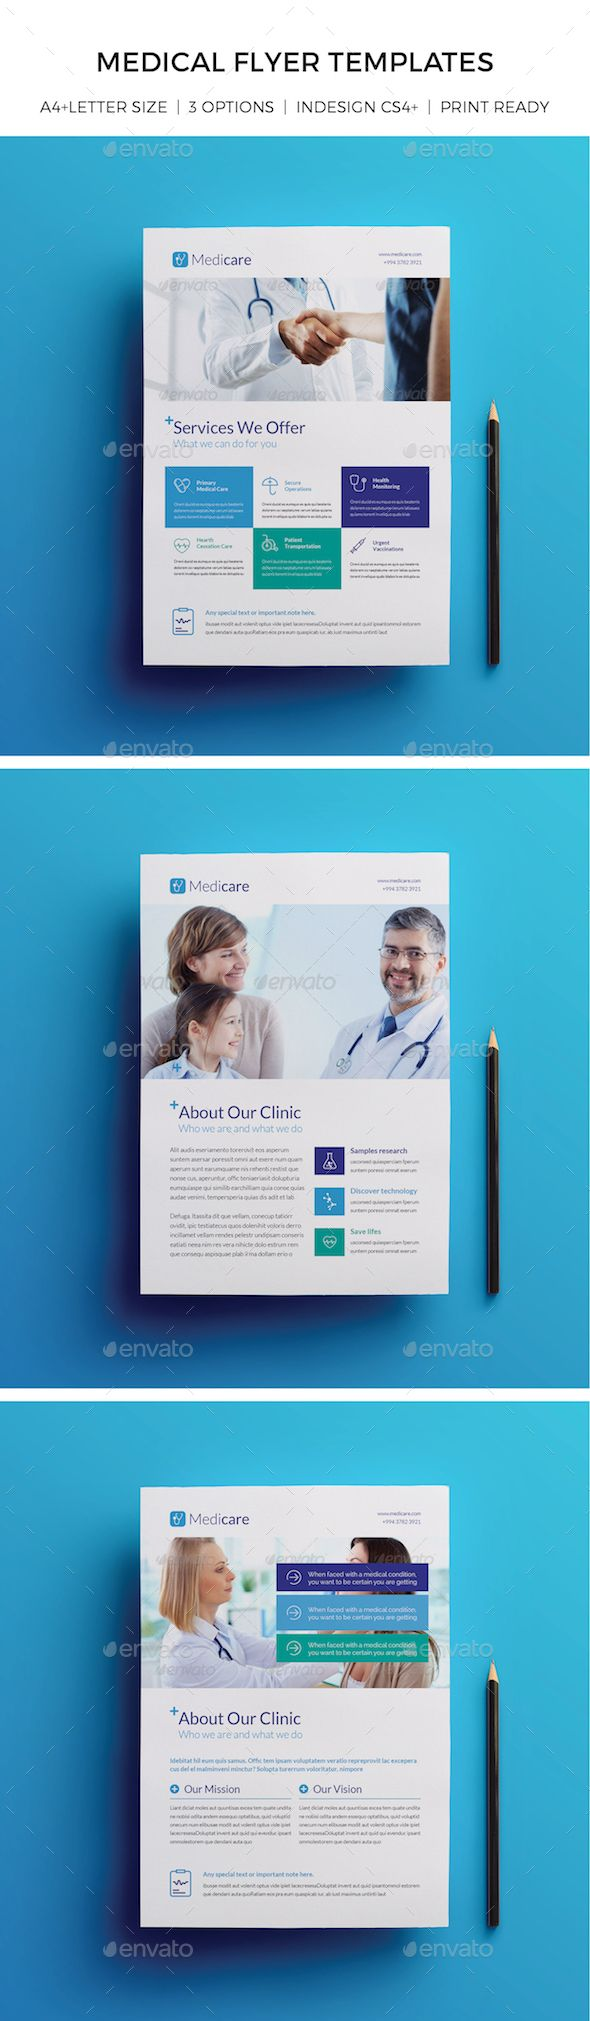 Medical Flyer Templates Dental Hospital Flyer Template And Clinic